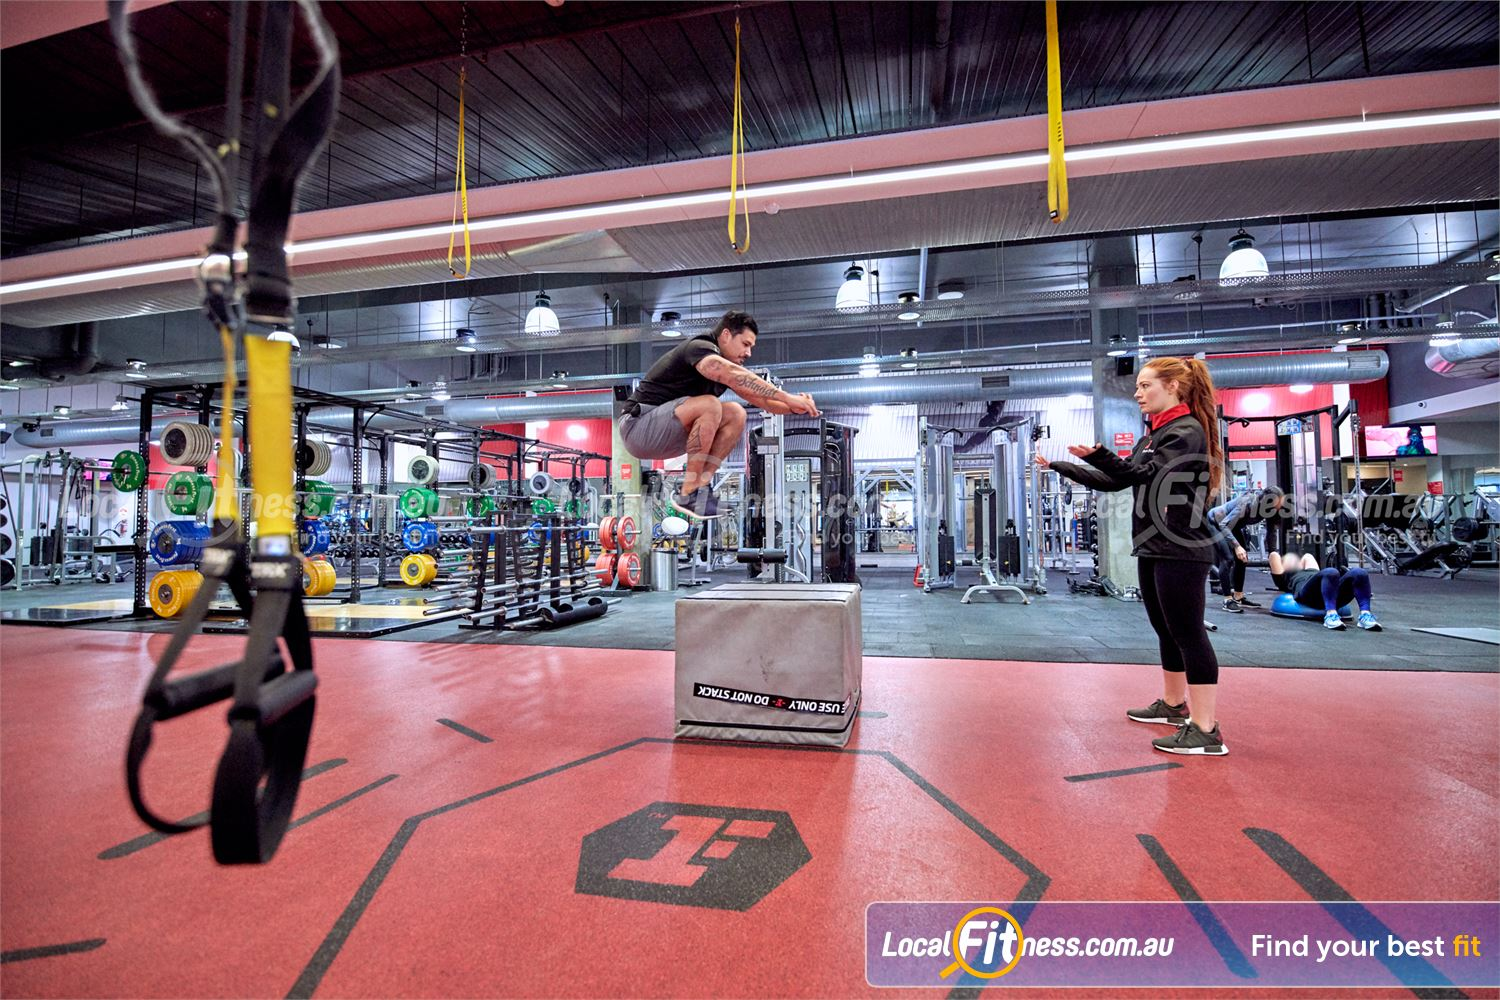 Fitness First Victoria Gardens Near South Yarra Improve your athletic performance with plyometric training.